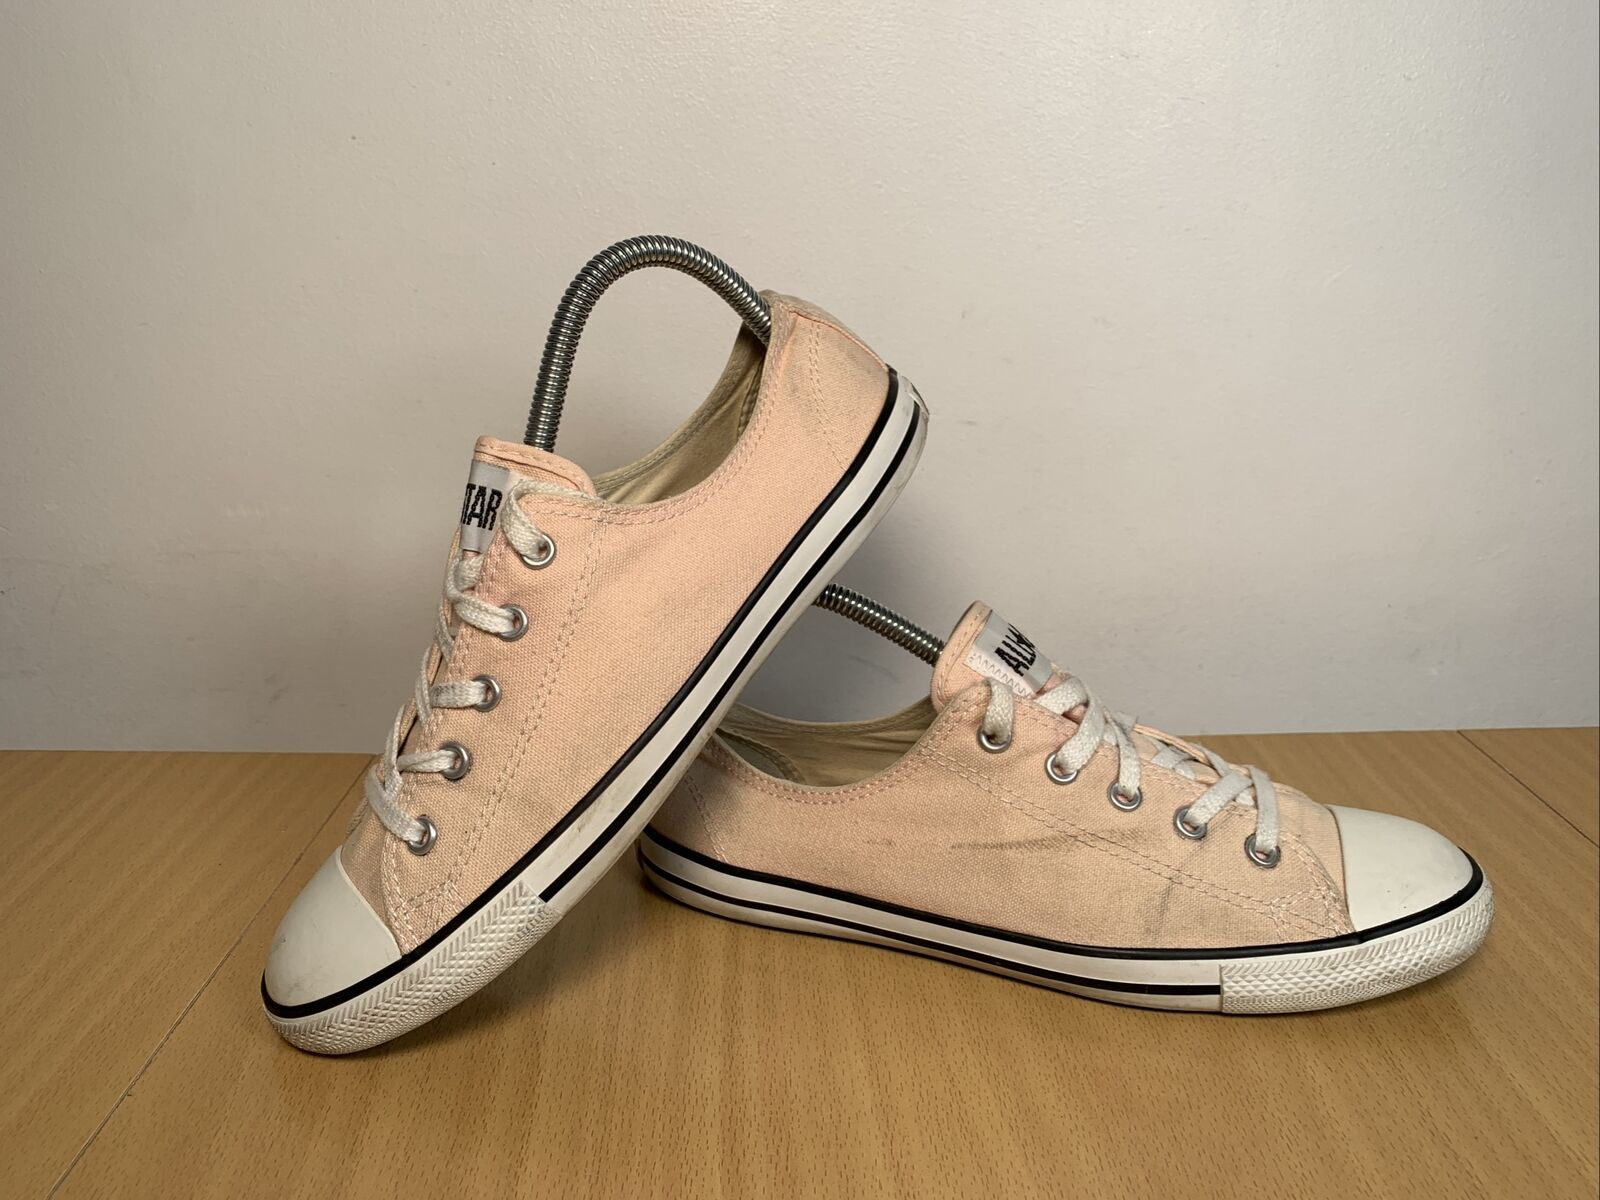 Converse All Star Basse Ox Toile Rose Clair Baskets Taille UK 6 EUR 40